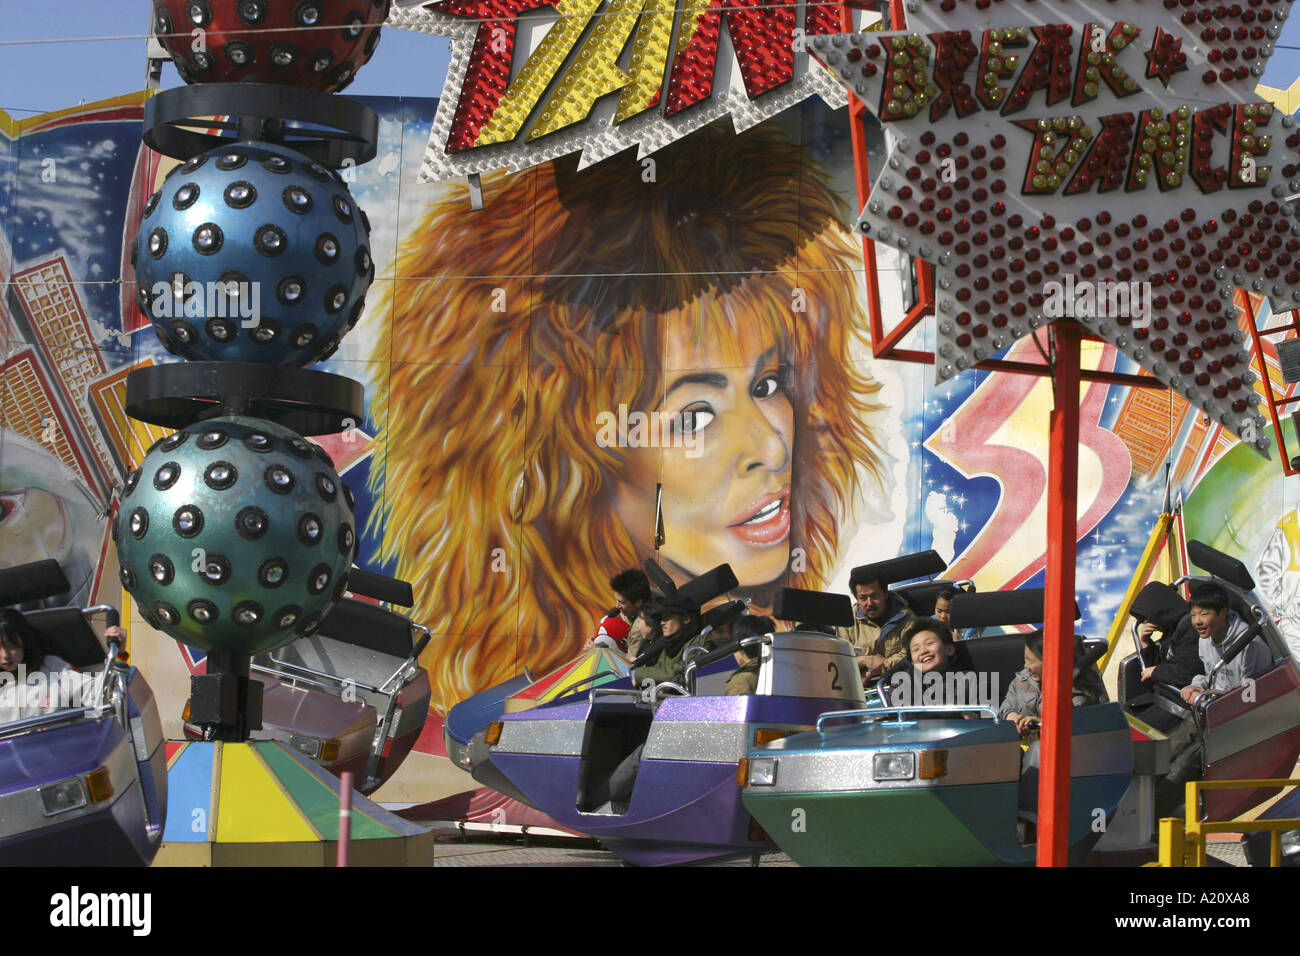 Portrait of Tina Turner at a fairground attraction, Tokyo, Japan. - Stock Image